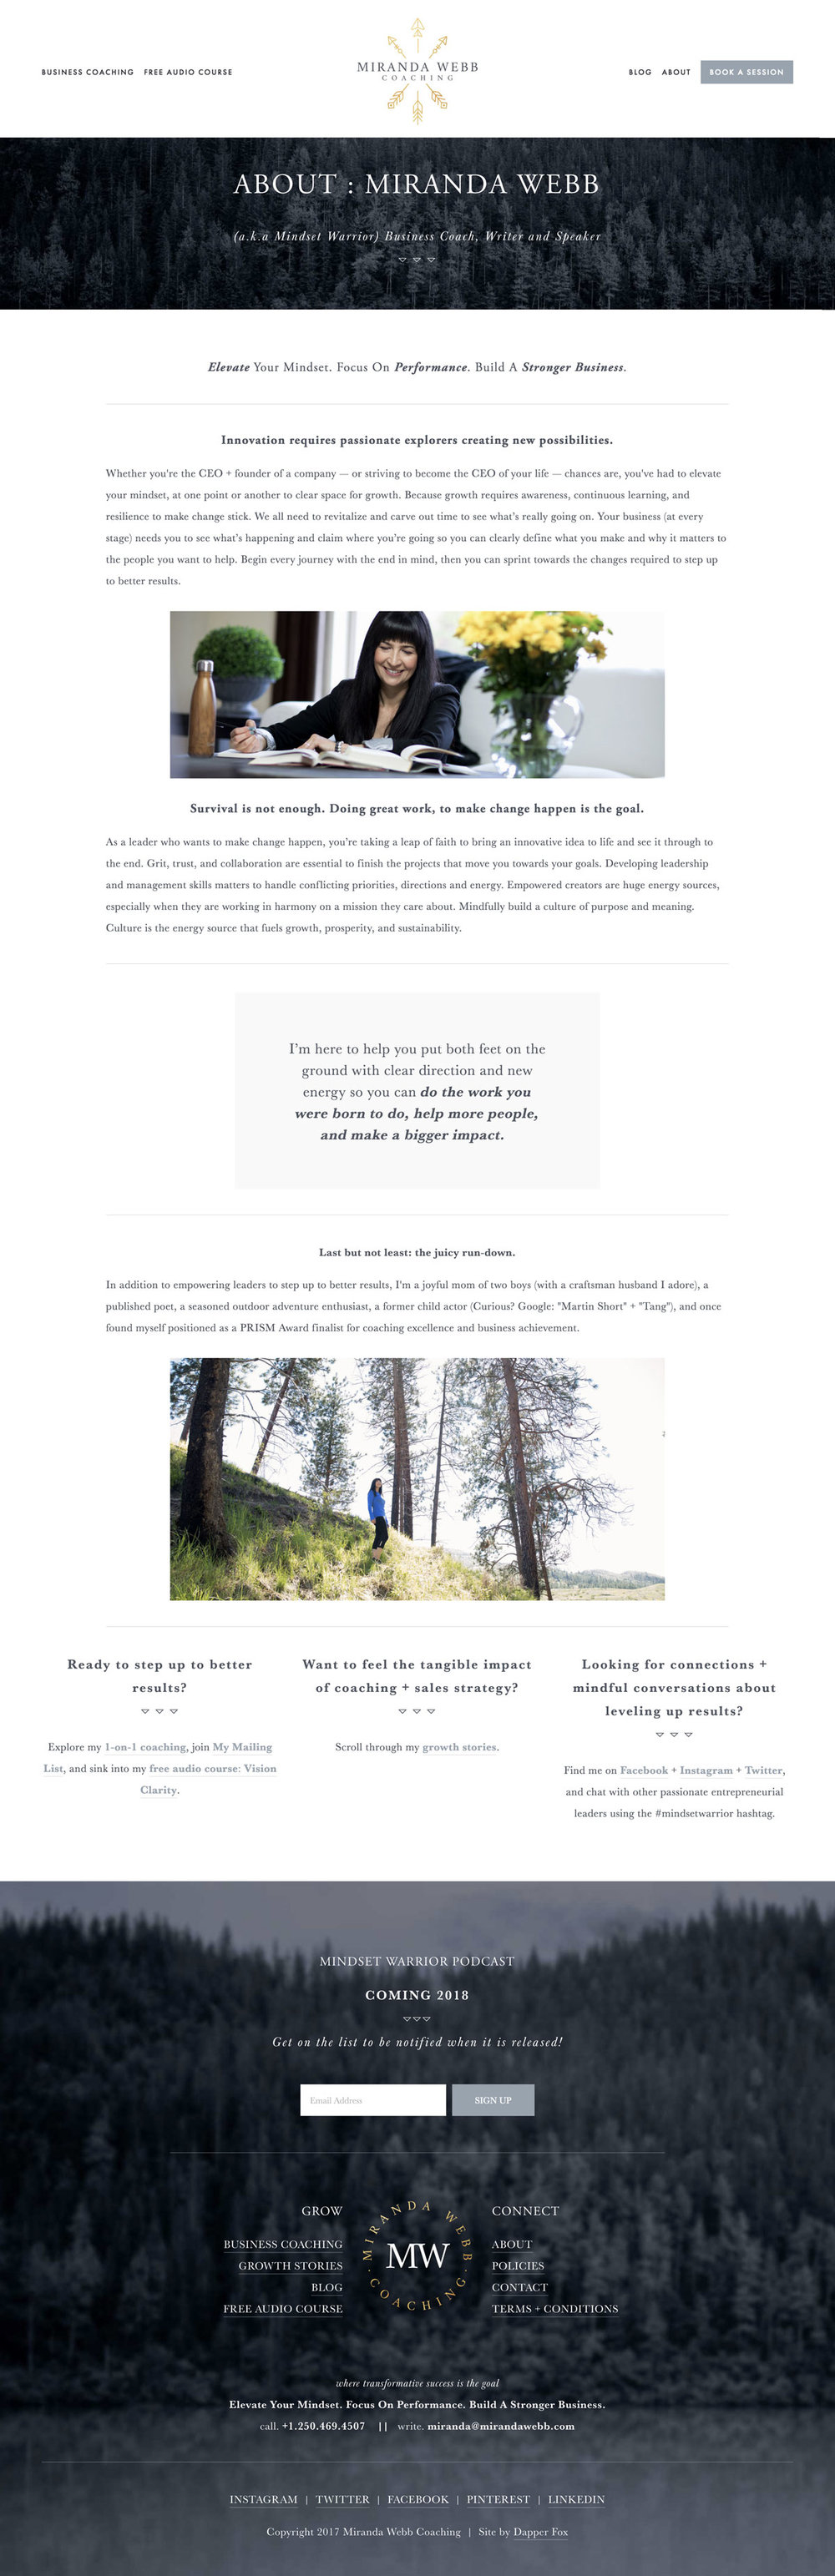 About Miranda, Business Warrior and Mindset Coach Website Design